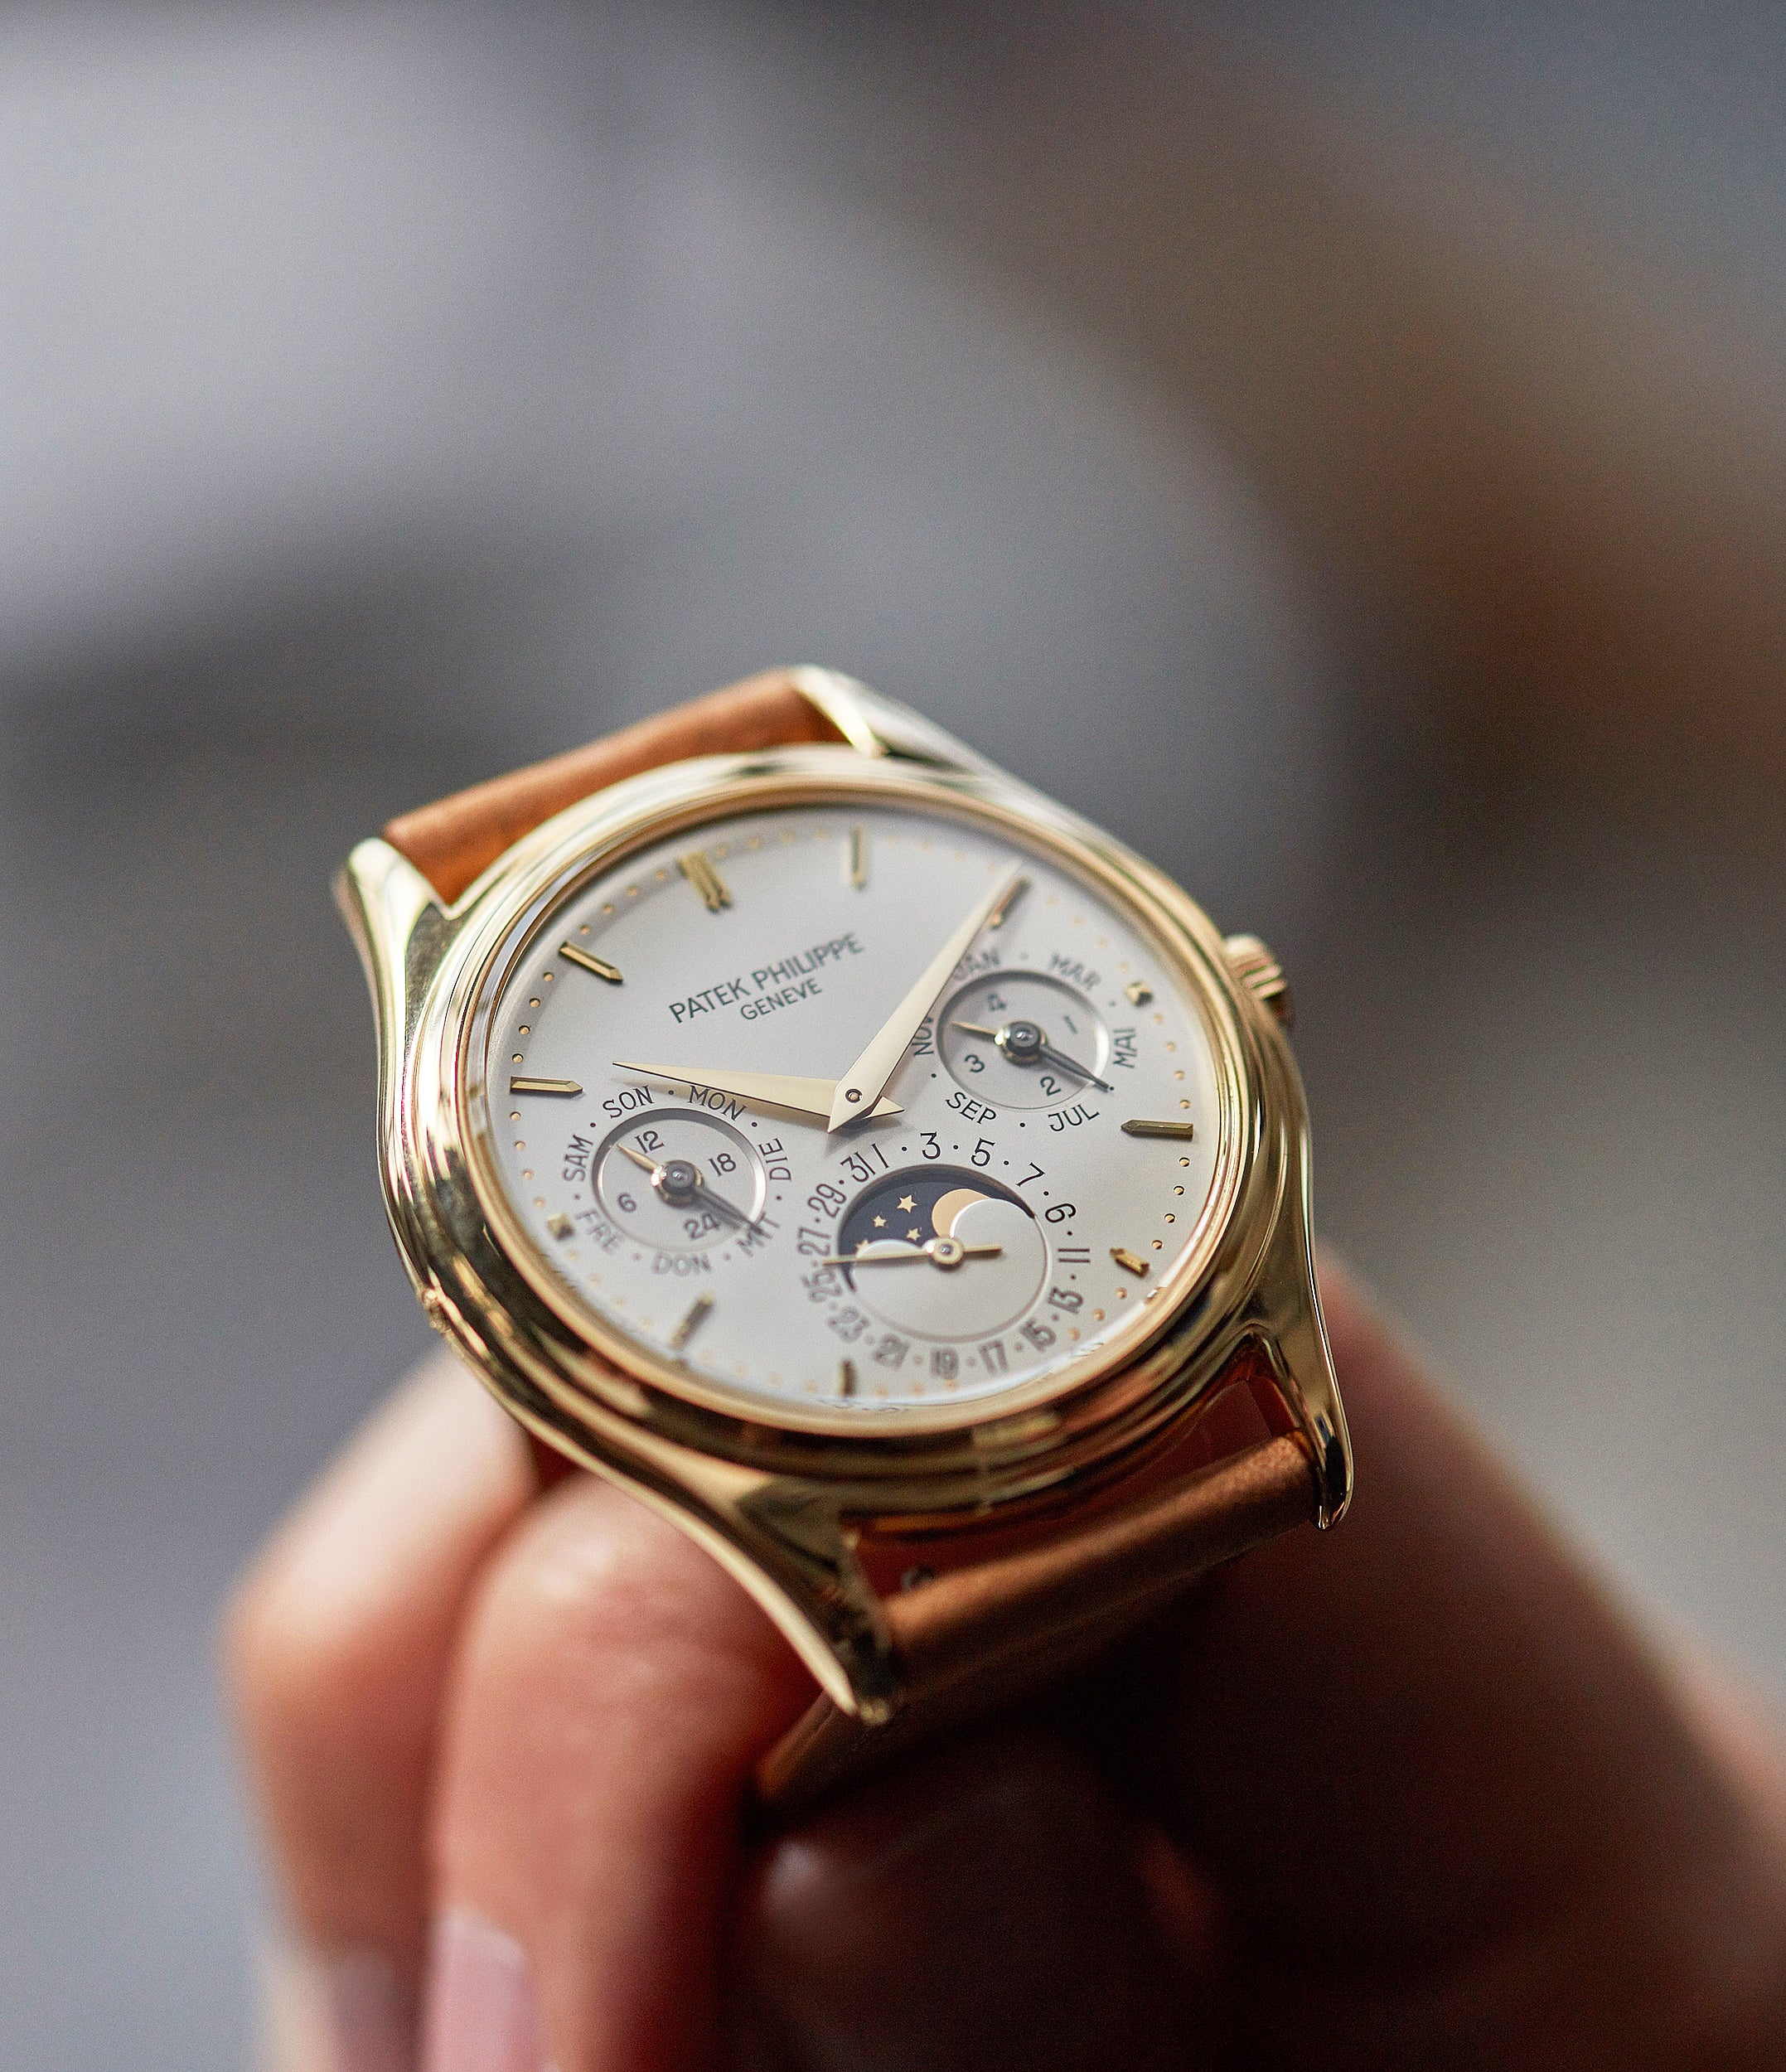 collect Patek Philippe 3940J first series yellow gold perpetual calendar dress watch for sale online at A Collected Man London